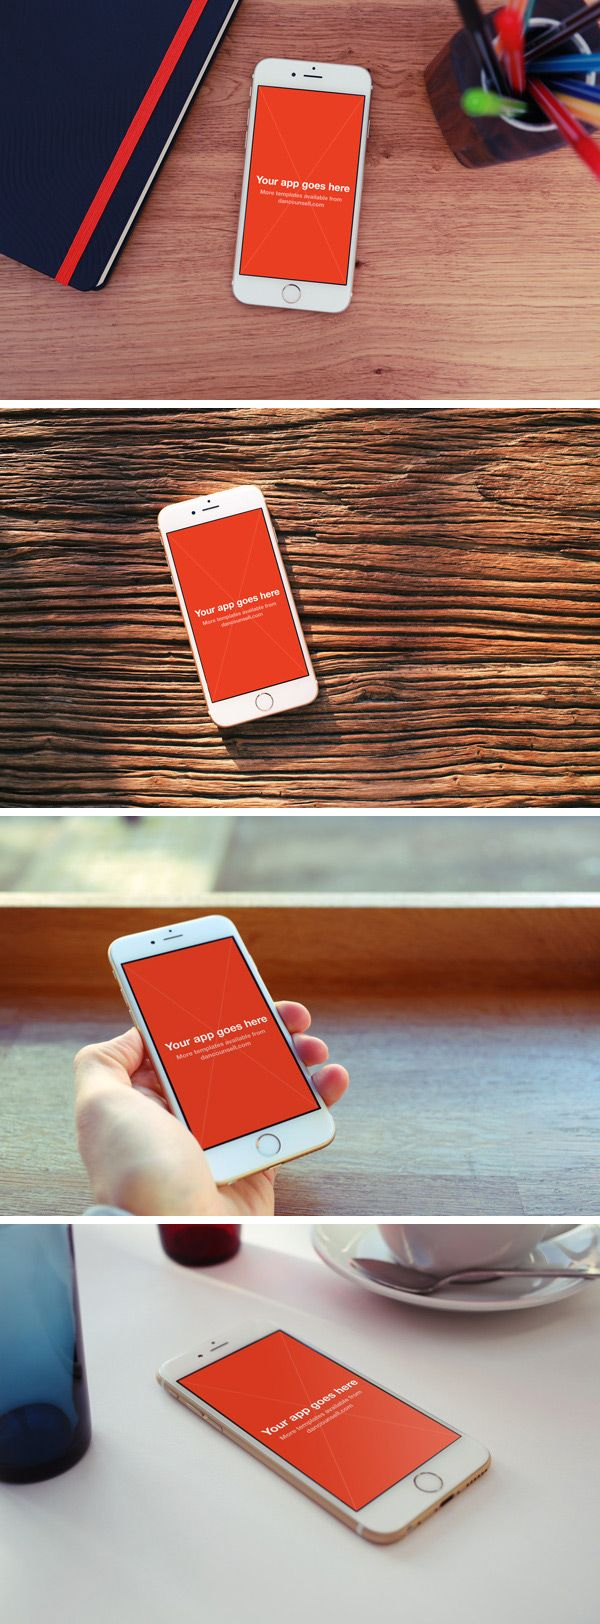 Free 4 iPhone 6 Photo MockUps (144.8 MB) | GraphicBurger